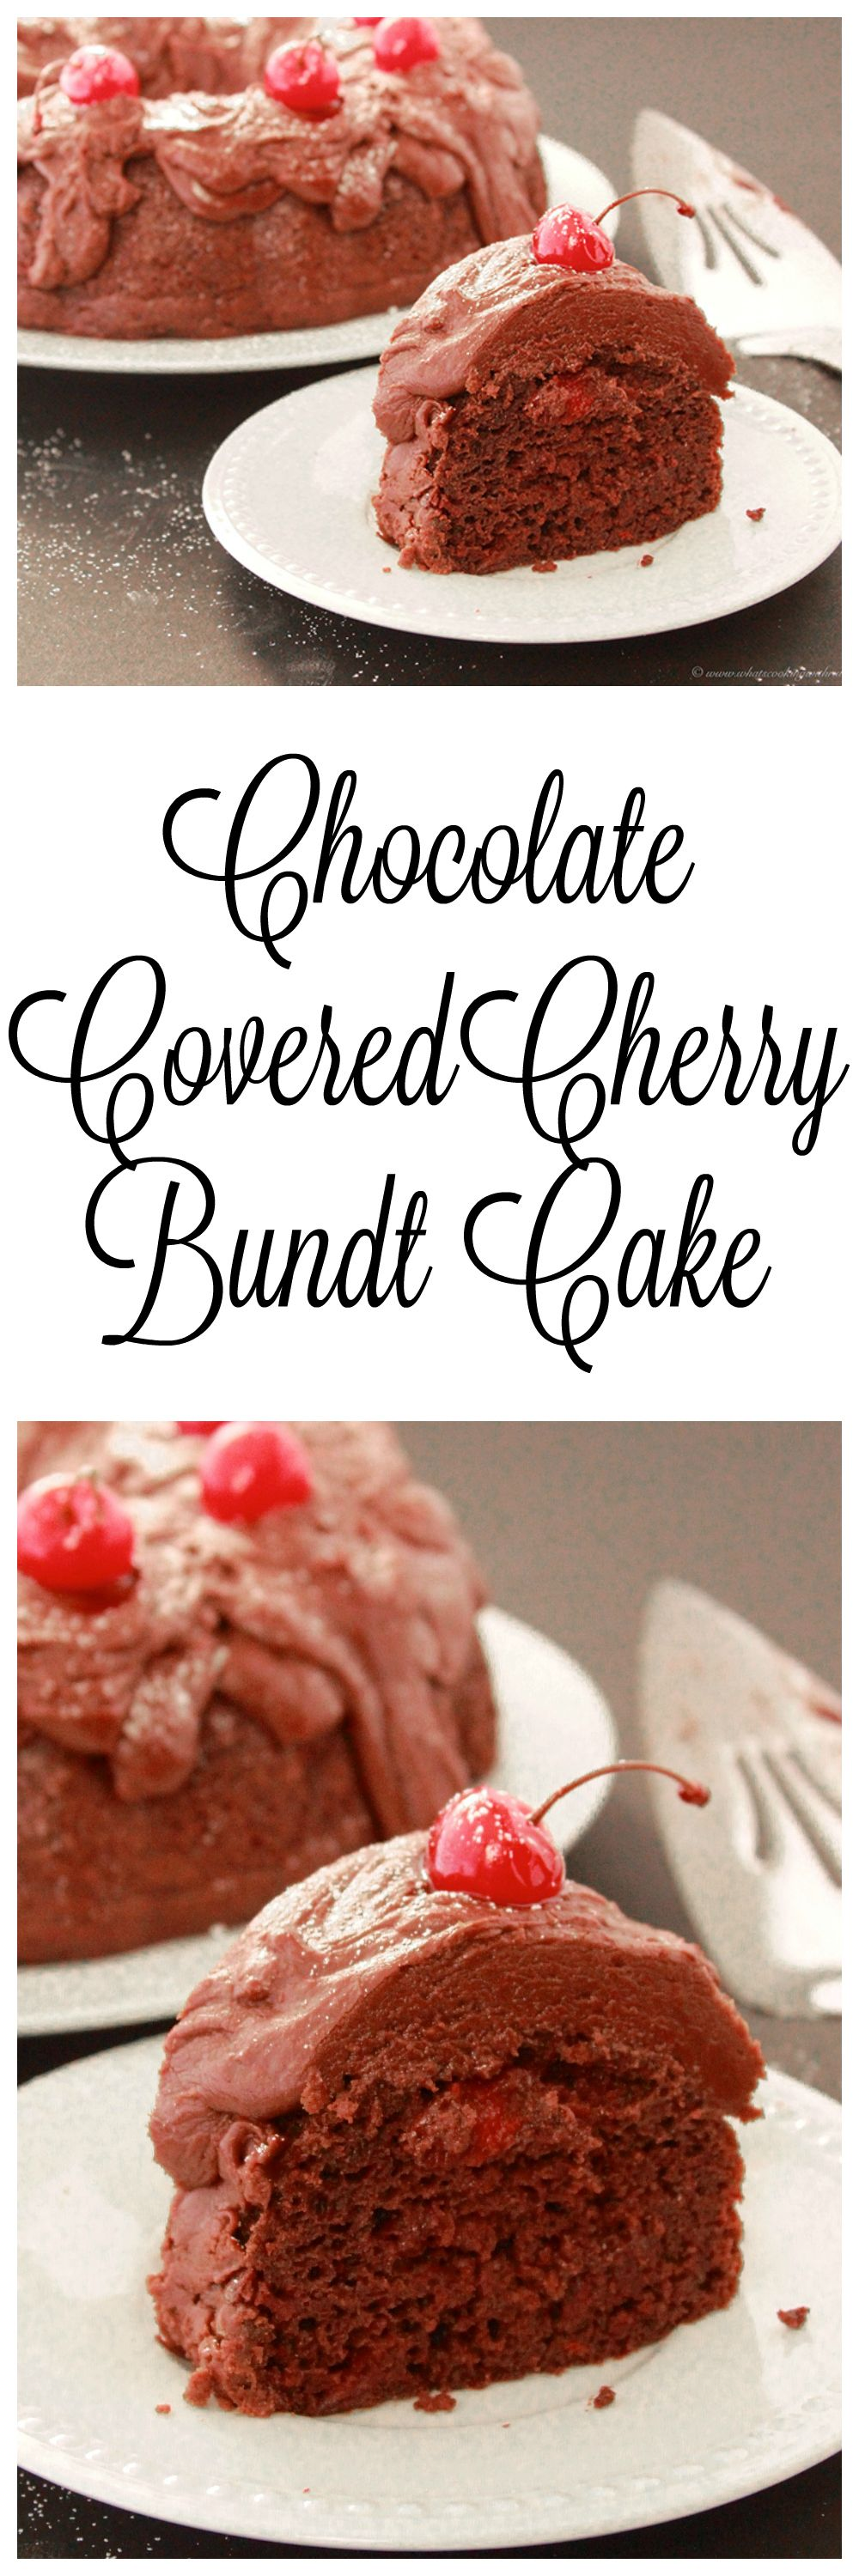 Chocolate Covered Cherry Bundt Cake is moist, delicious, and a lovely idea for a Valentines dinner dessert! on www.cookingwithruthie.com